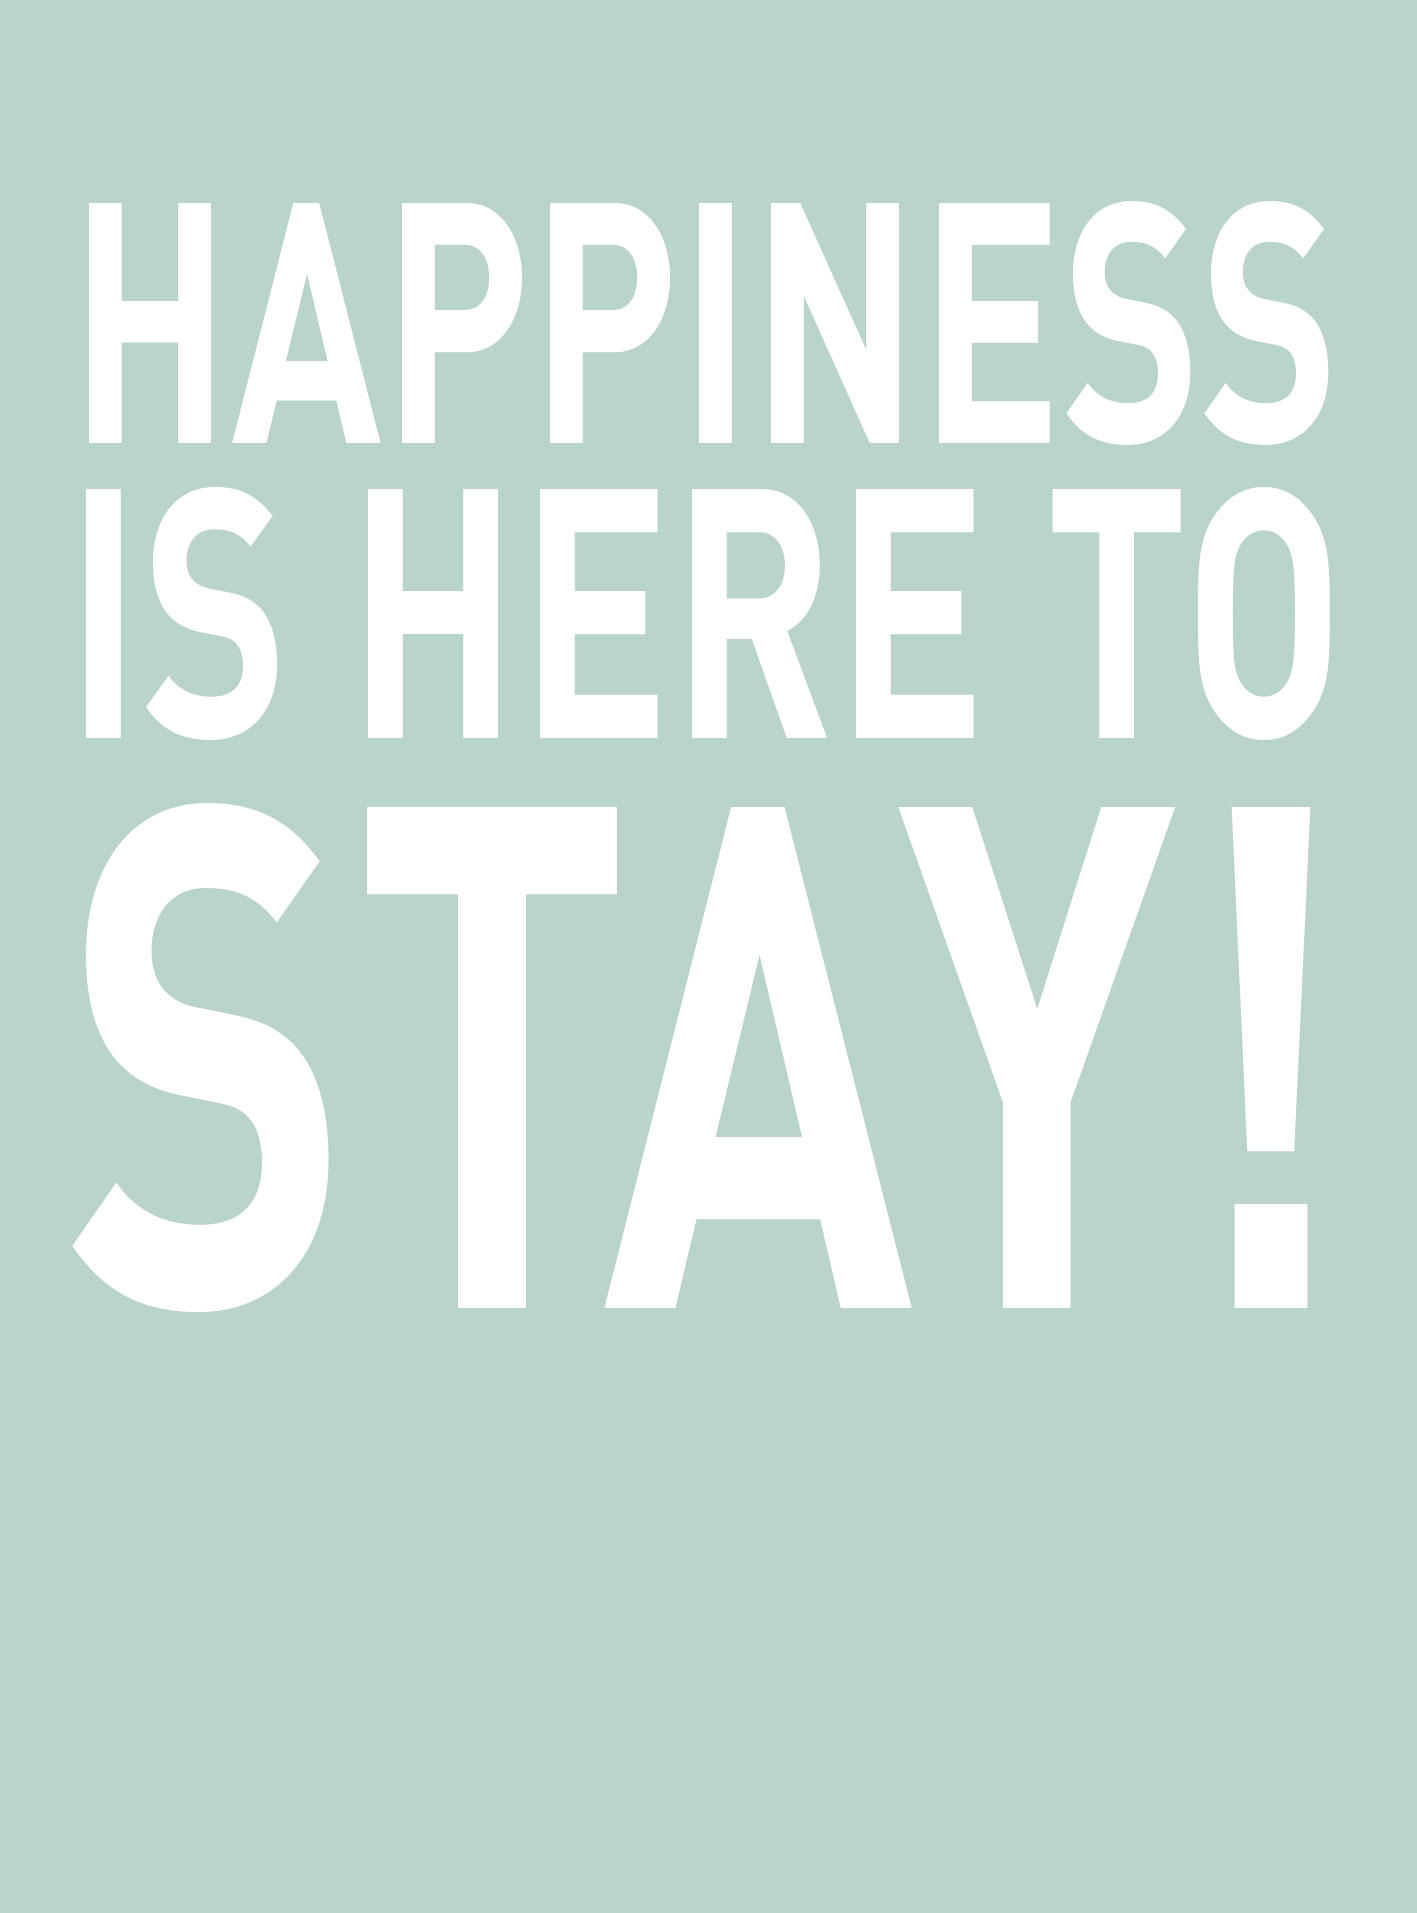 happiness-stay